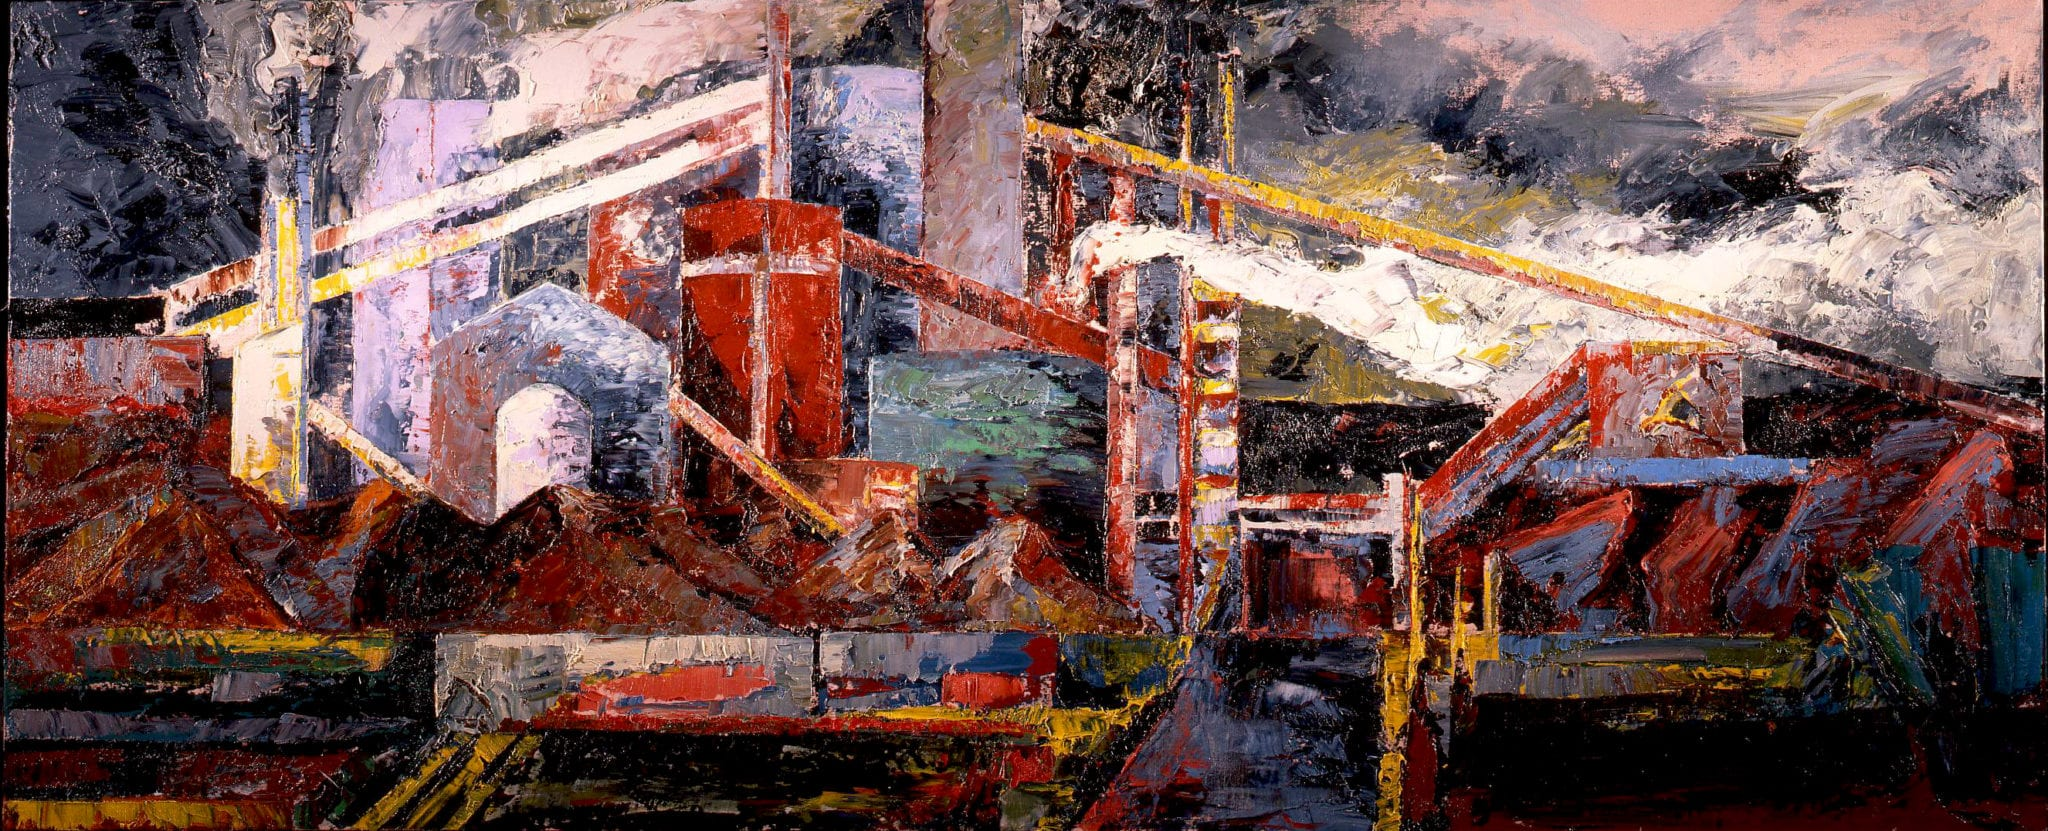 Mandy Martin Born 1952 APM rain, steam & speed 1990 Oil on linen 100 x 244.2 cm